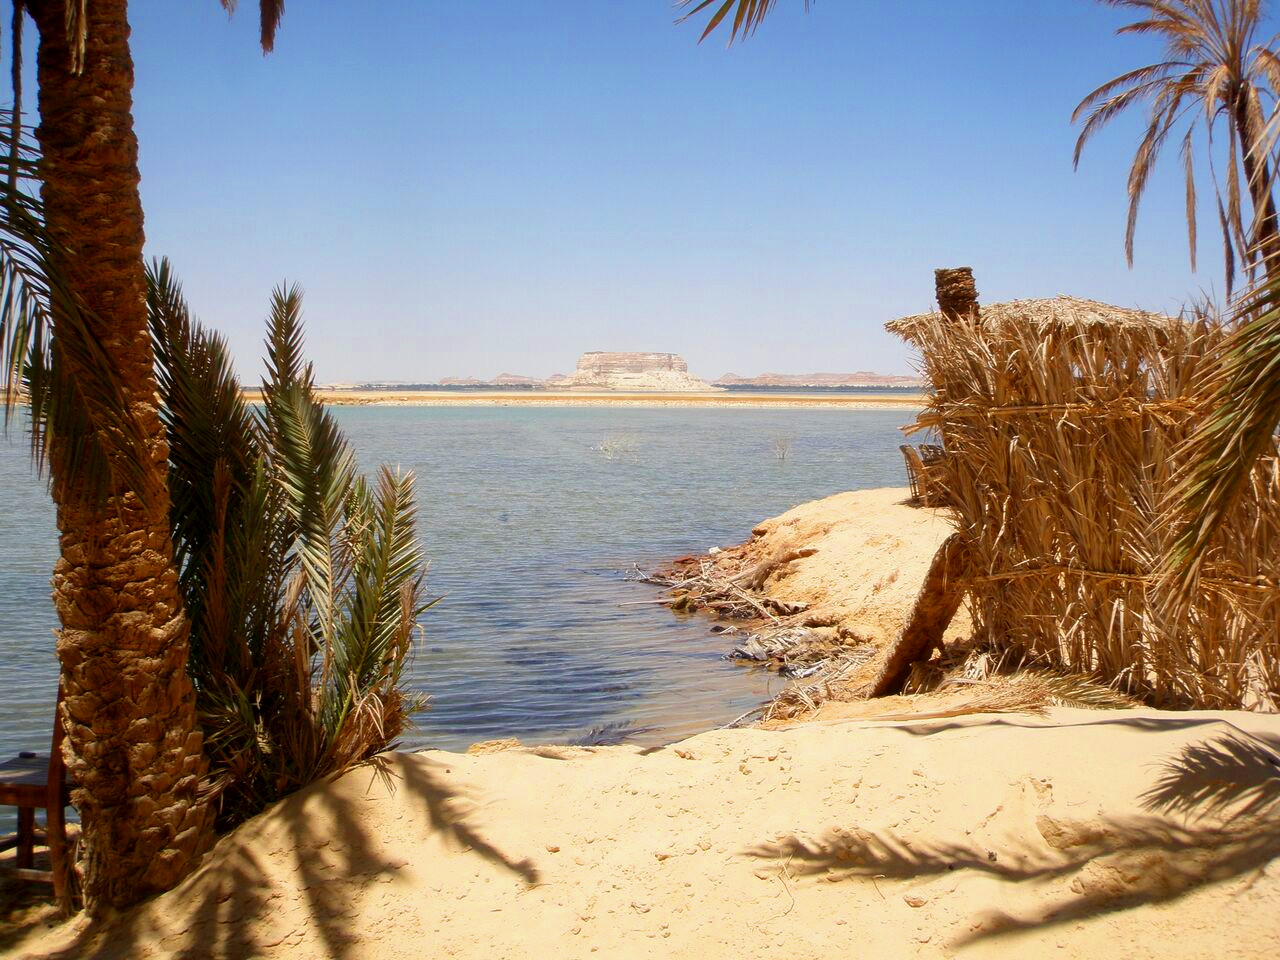 Swimming in Siwa Oasis